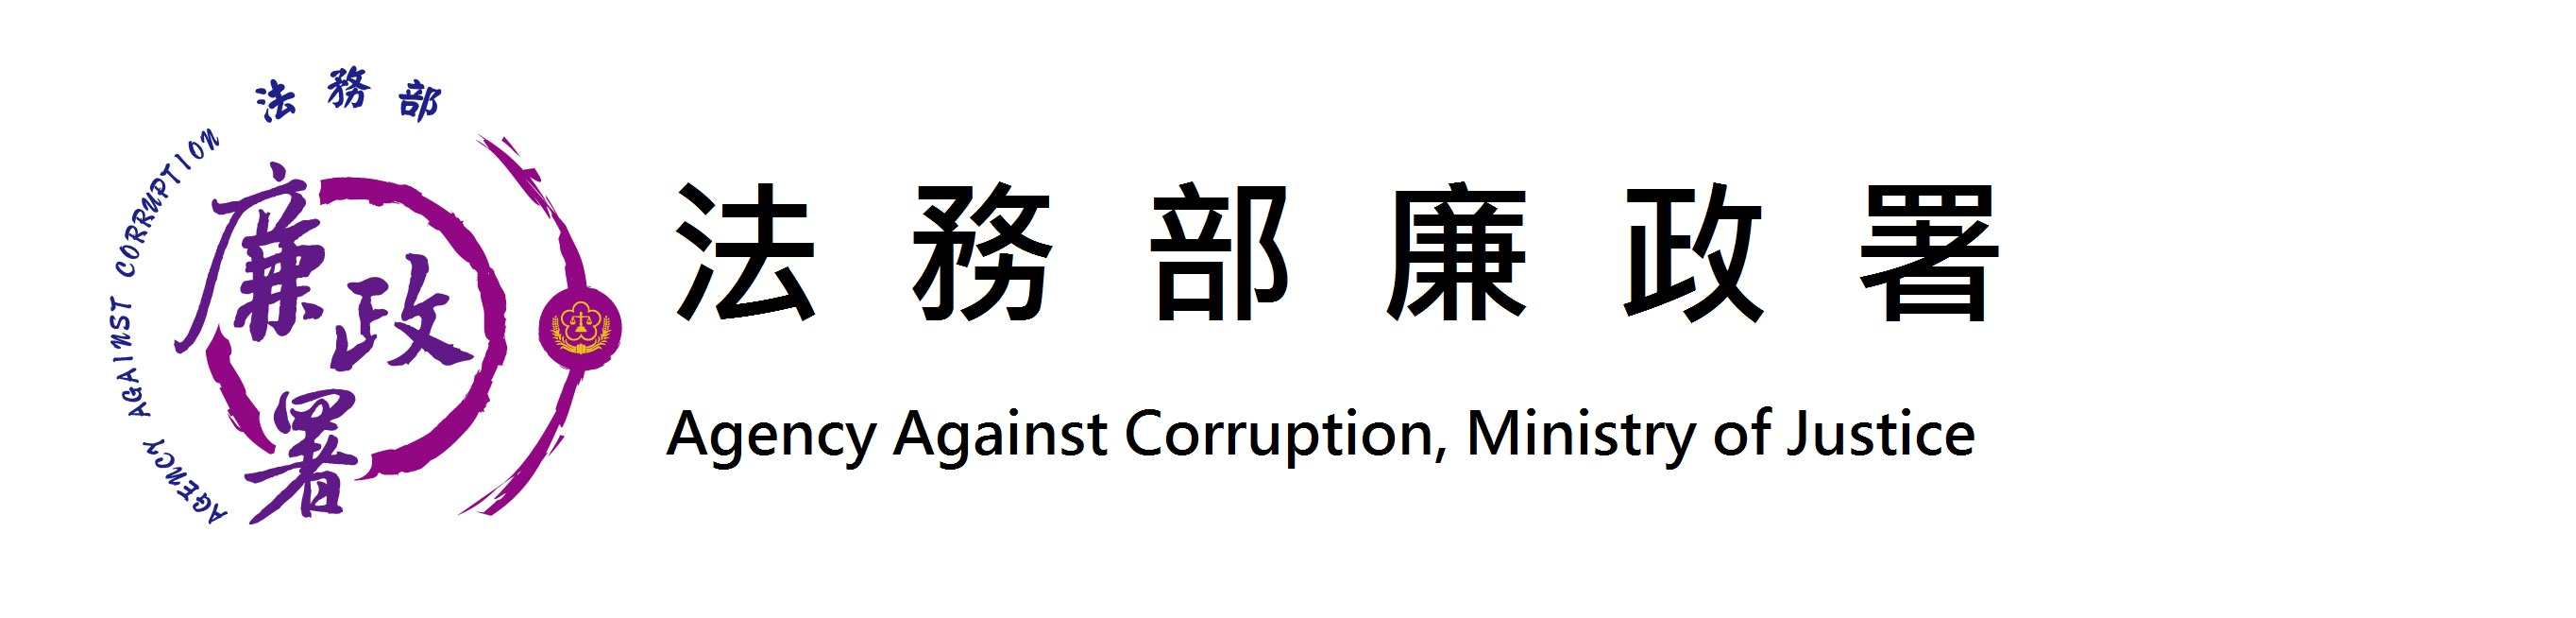 Agency Against Corruption Ministry of Justice